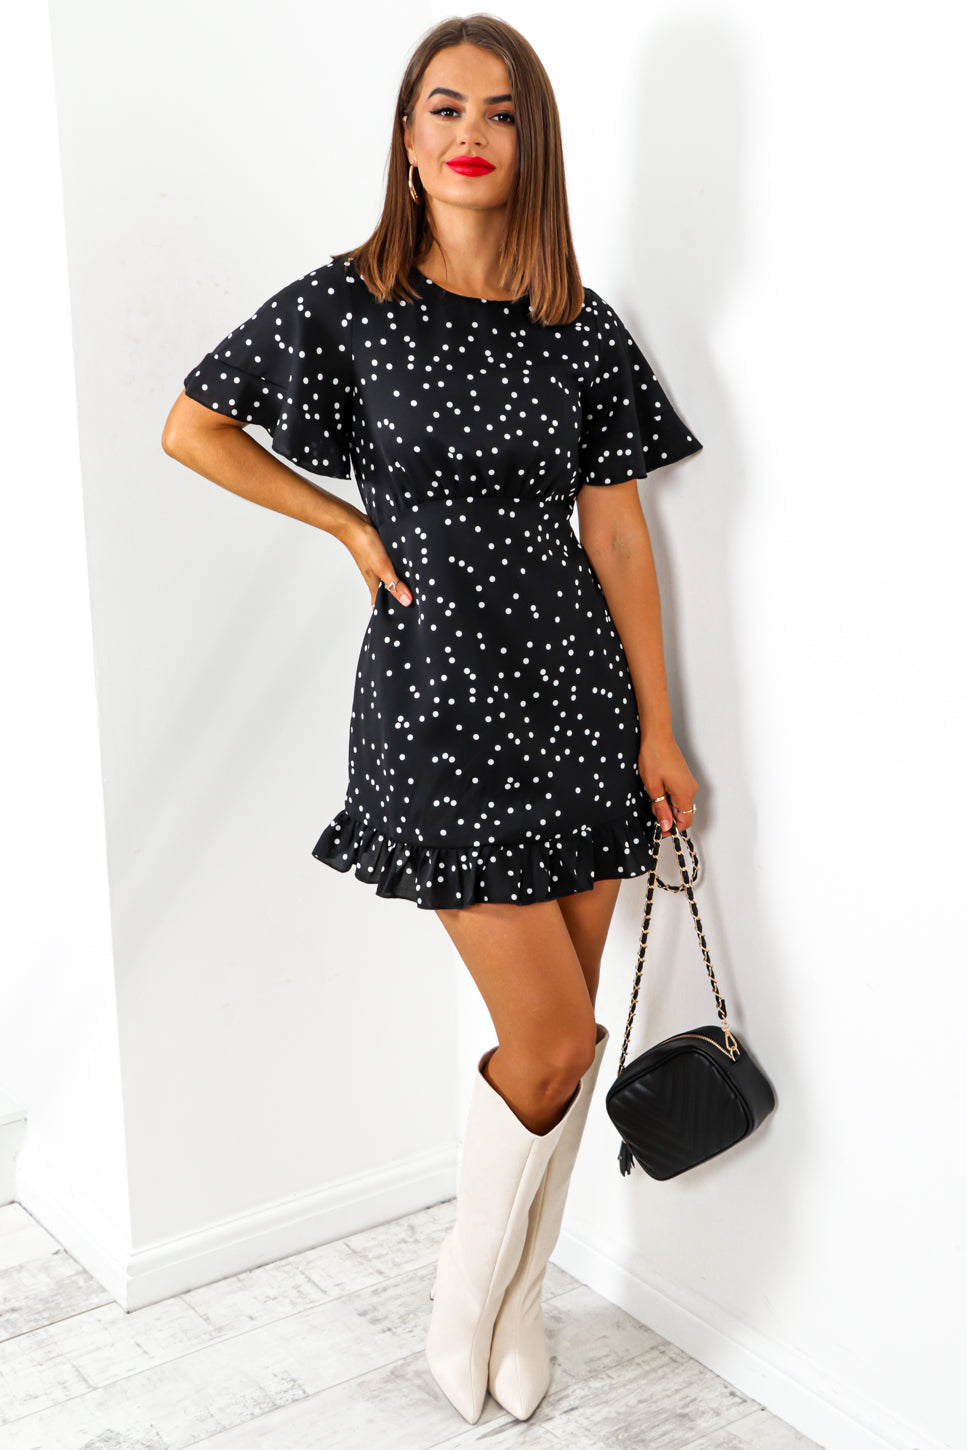 Dance For Me - Black White Polka Dot Swing Mini Dress